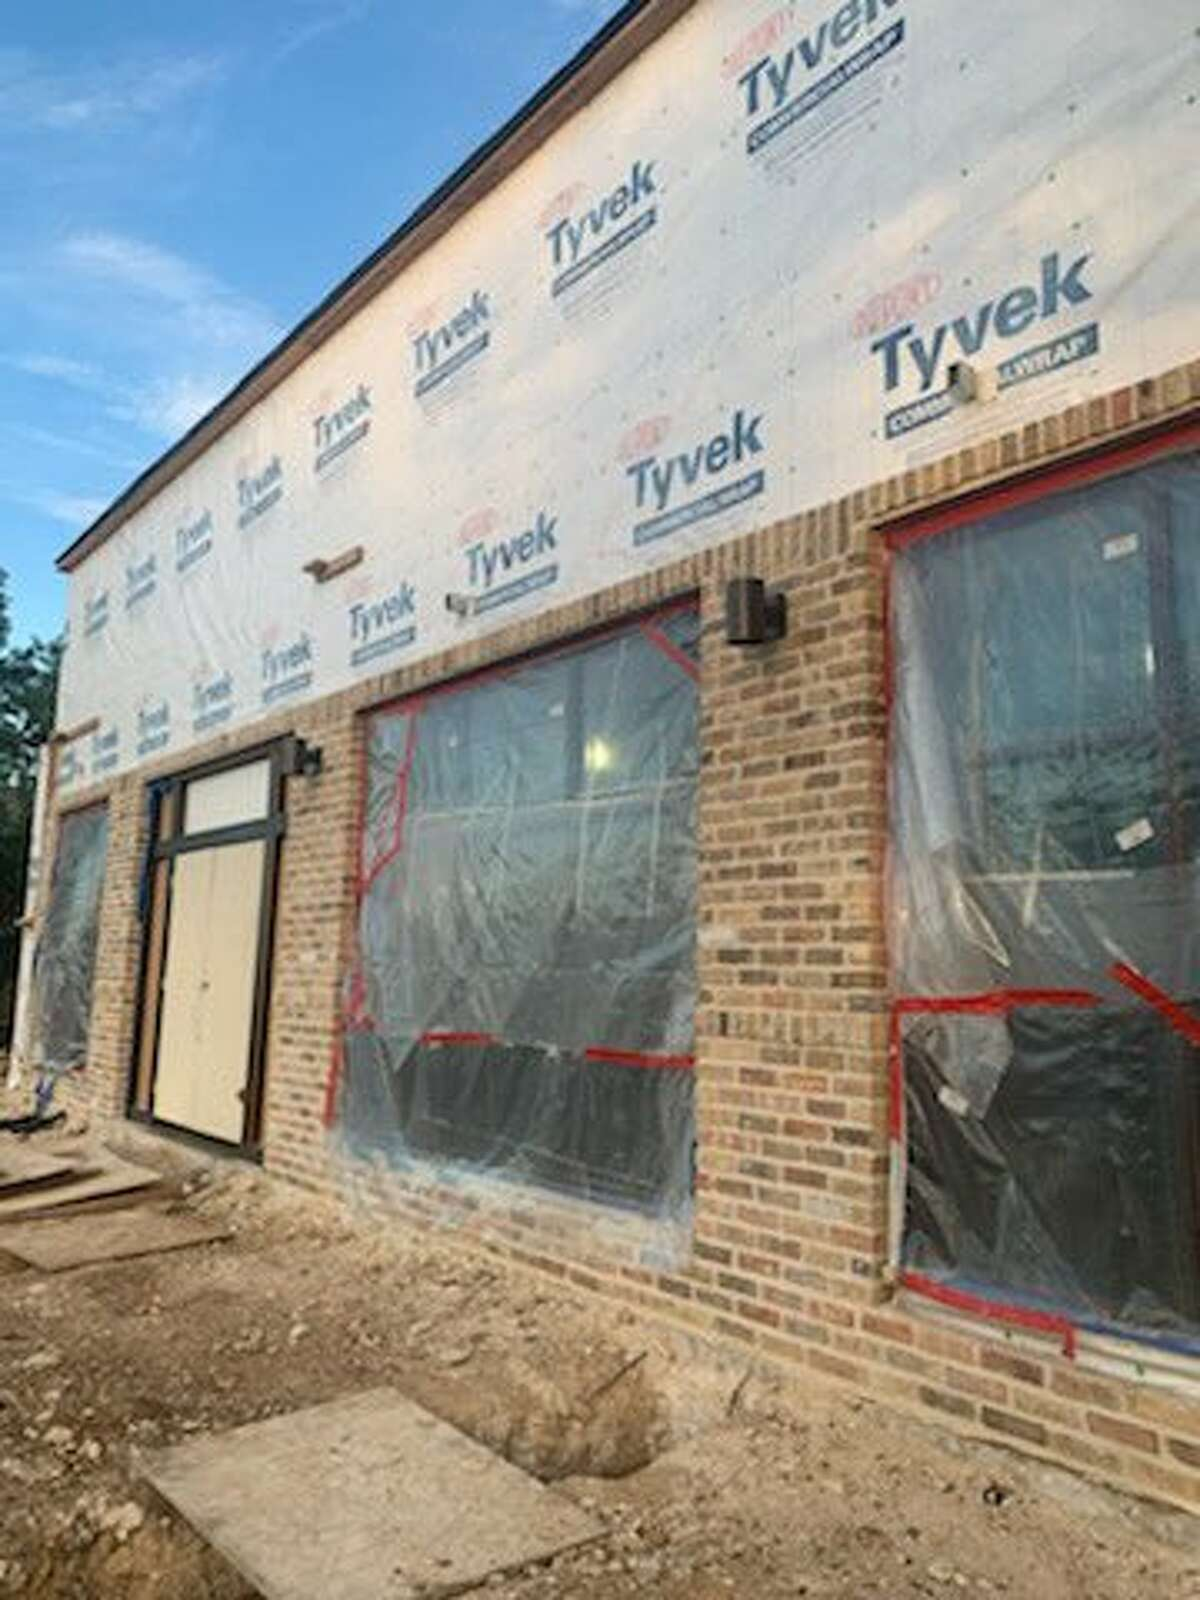 Construction of San Antonio's first Delia's Tamales location is still underway during the COVID-19 pandemic. Spokesman John King said the building of the 13527 Hausman Pass, near Loop 1604, is